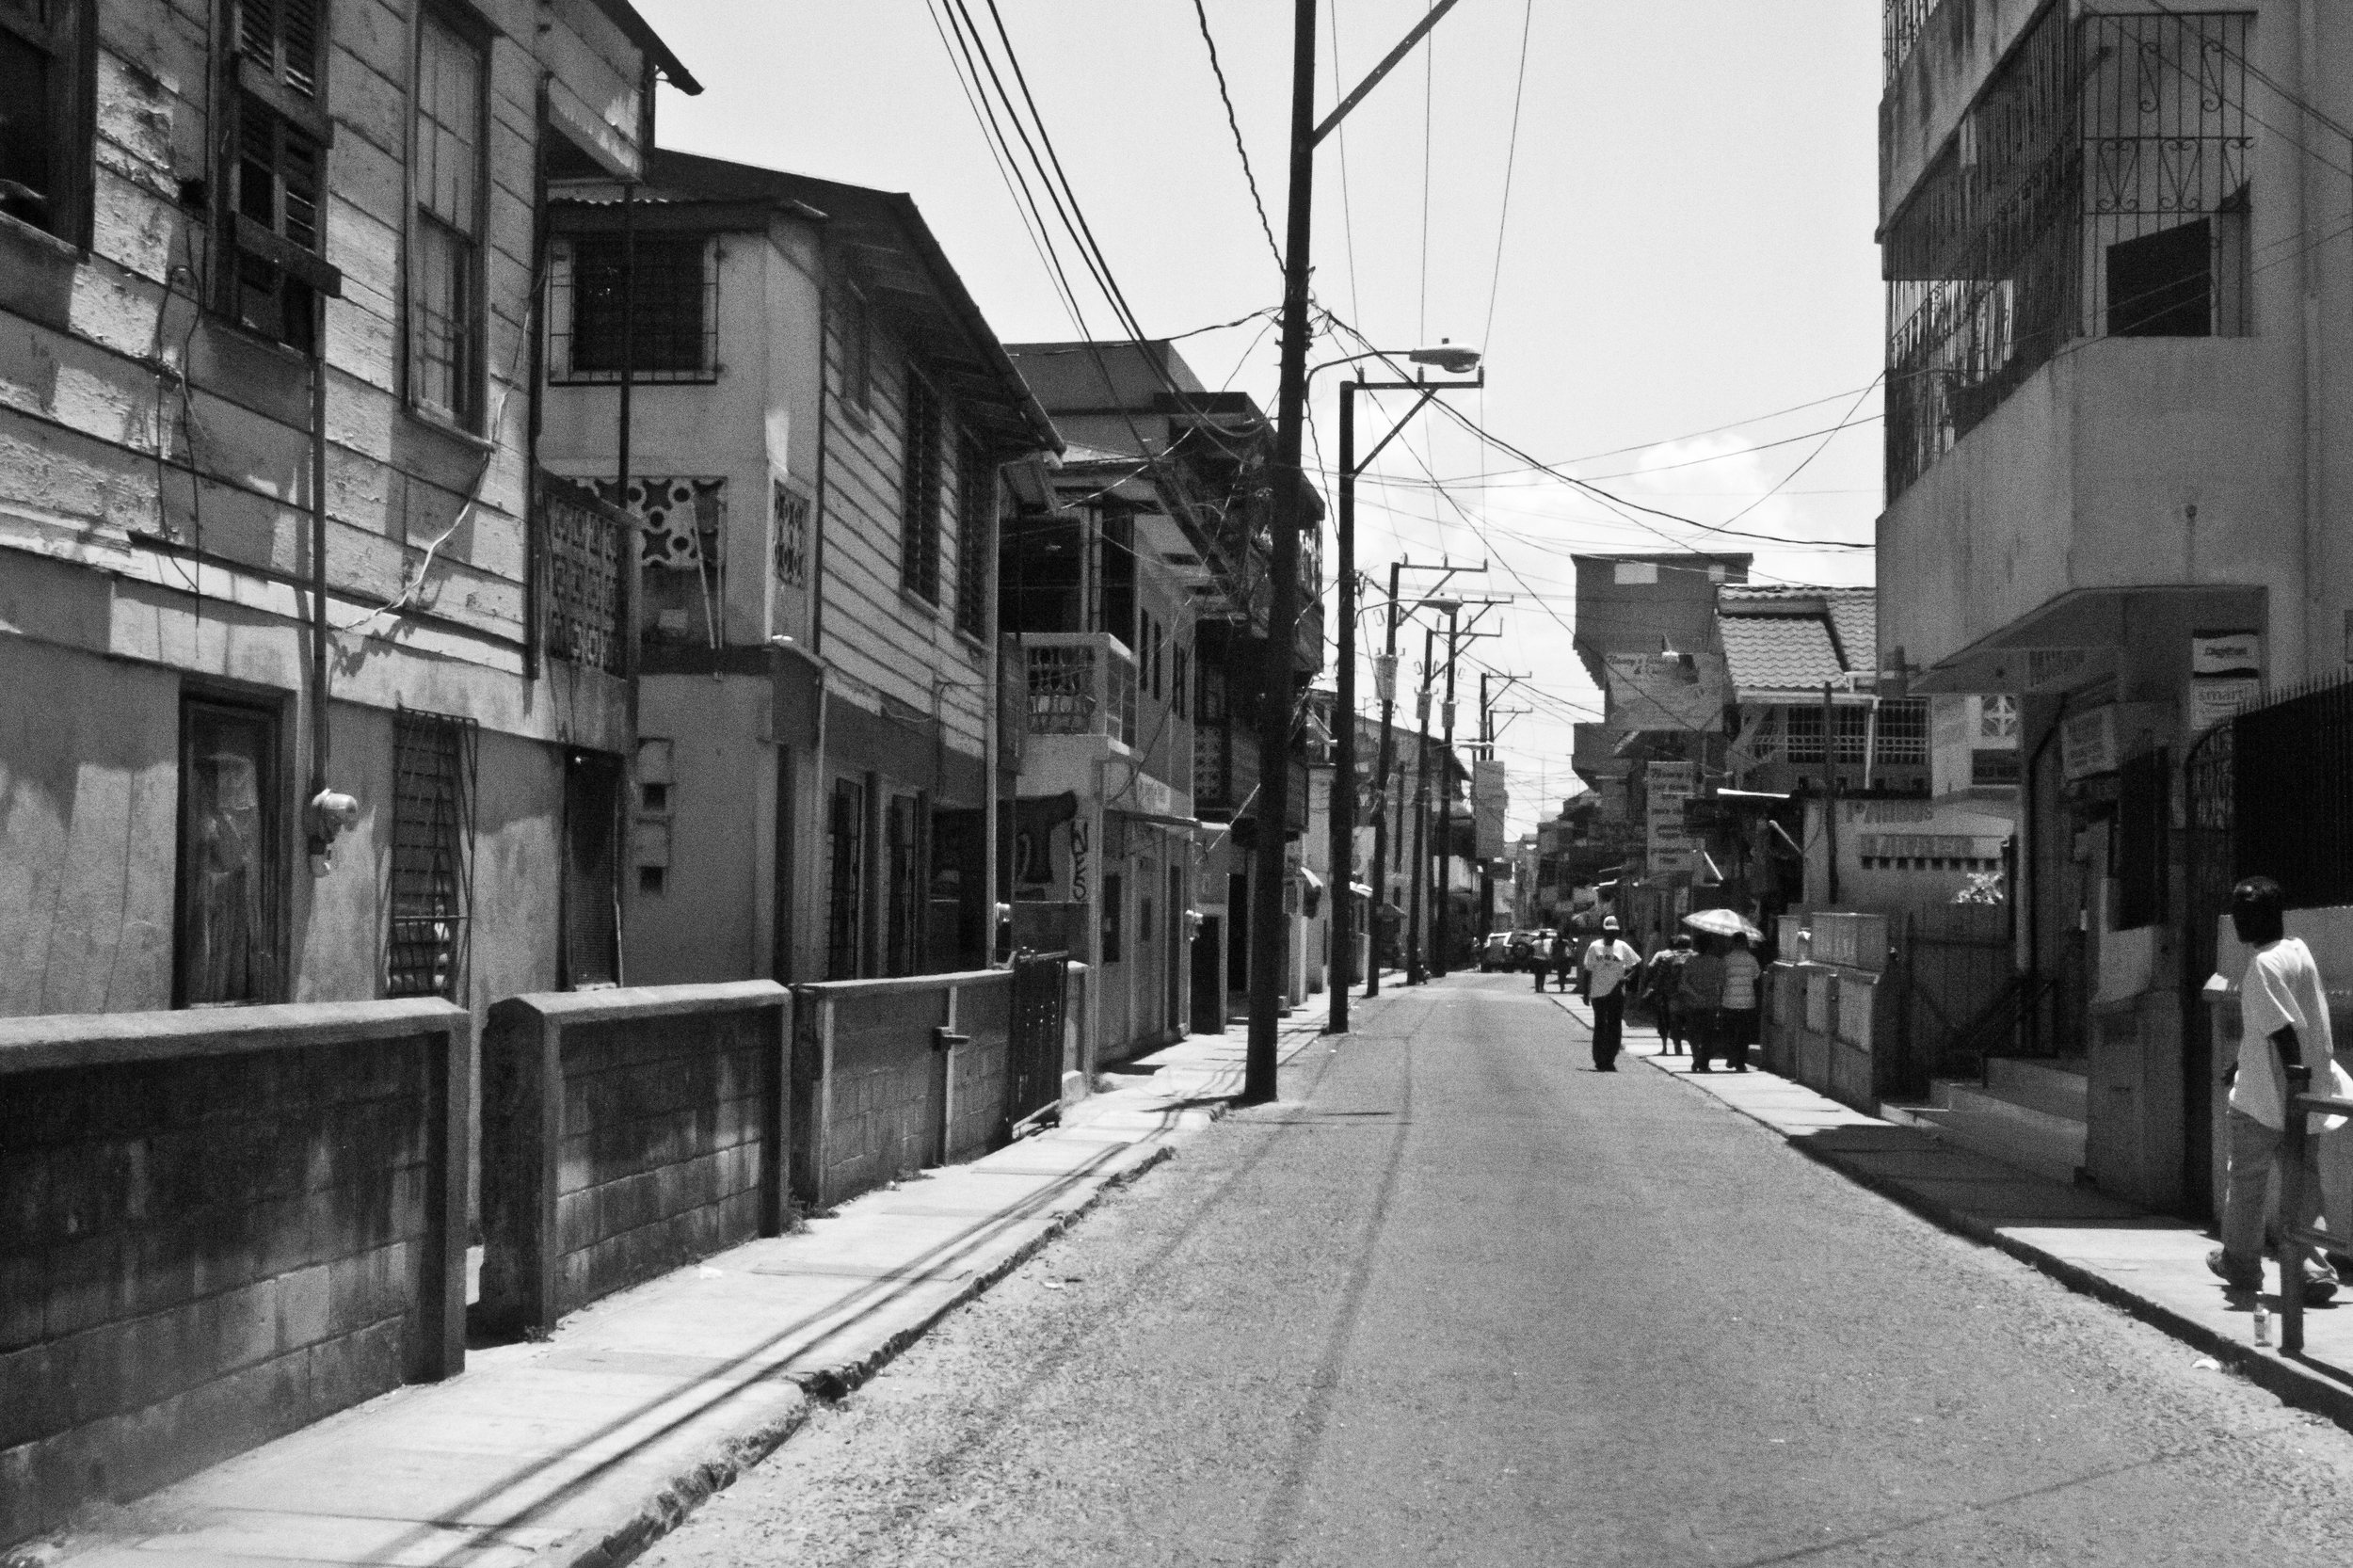 The streets of Belize